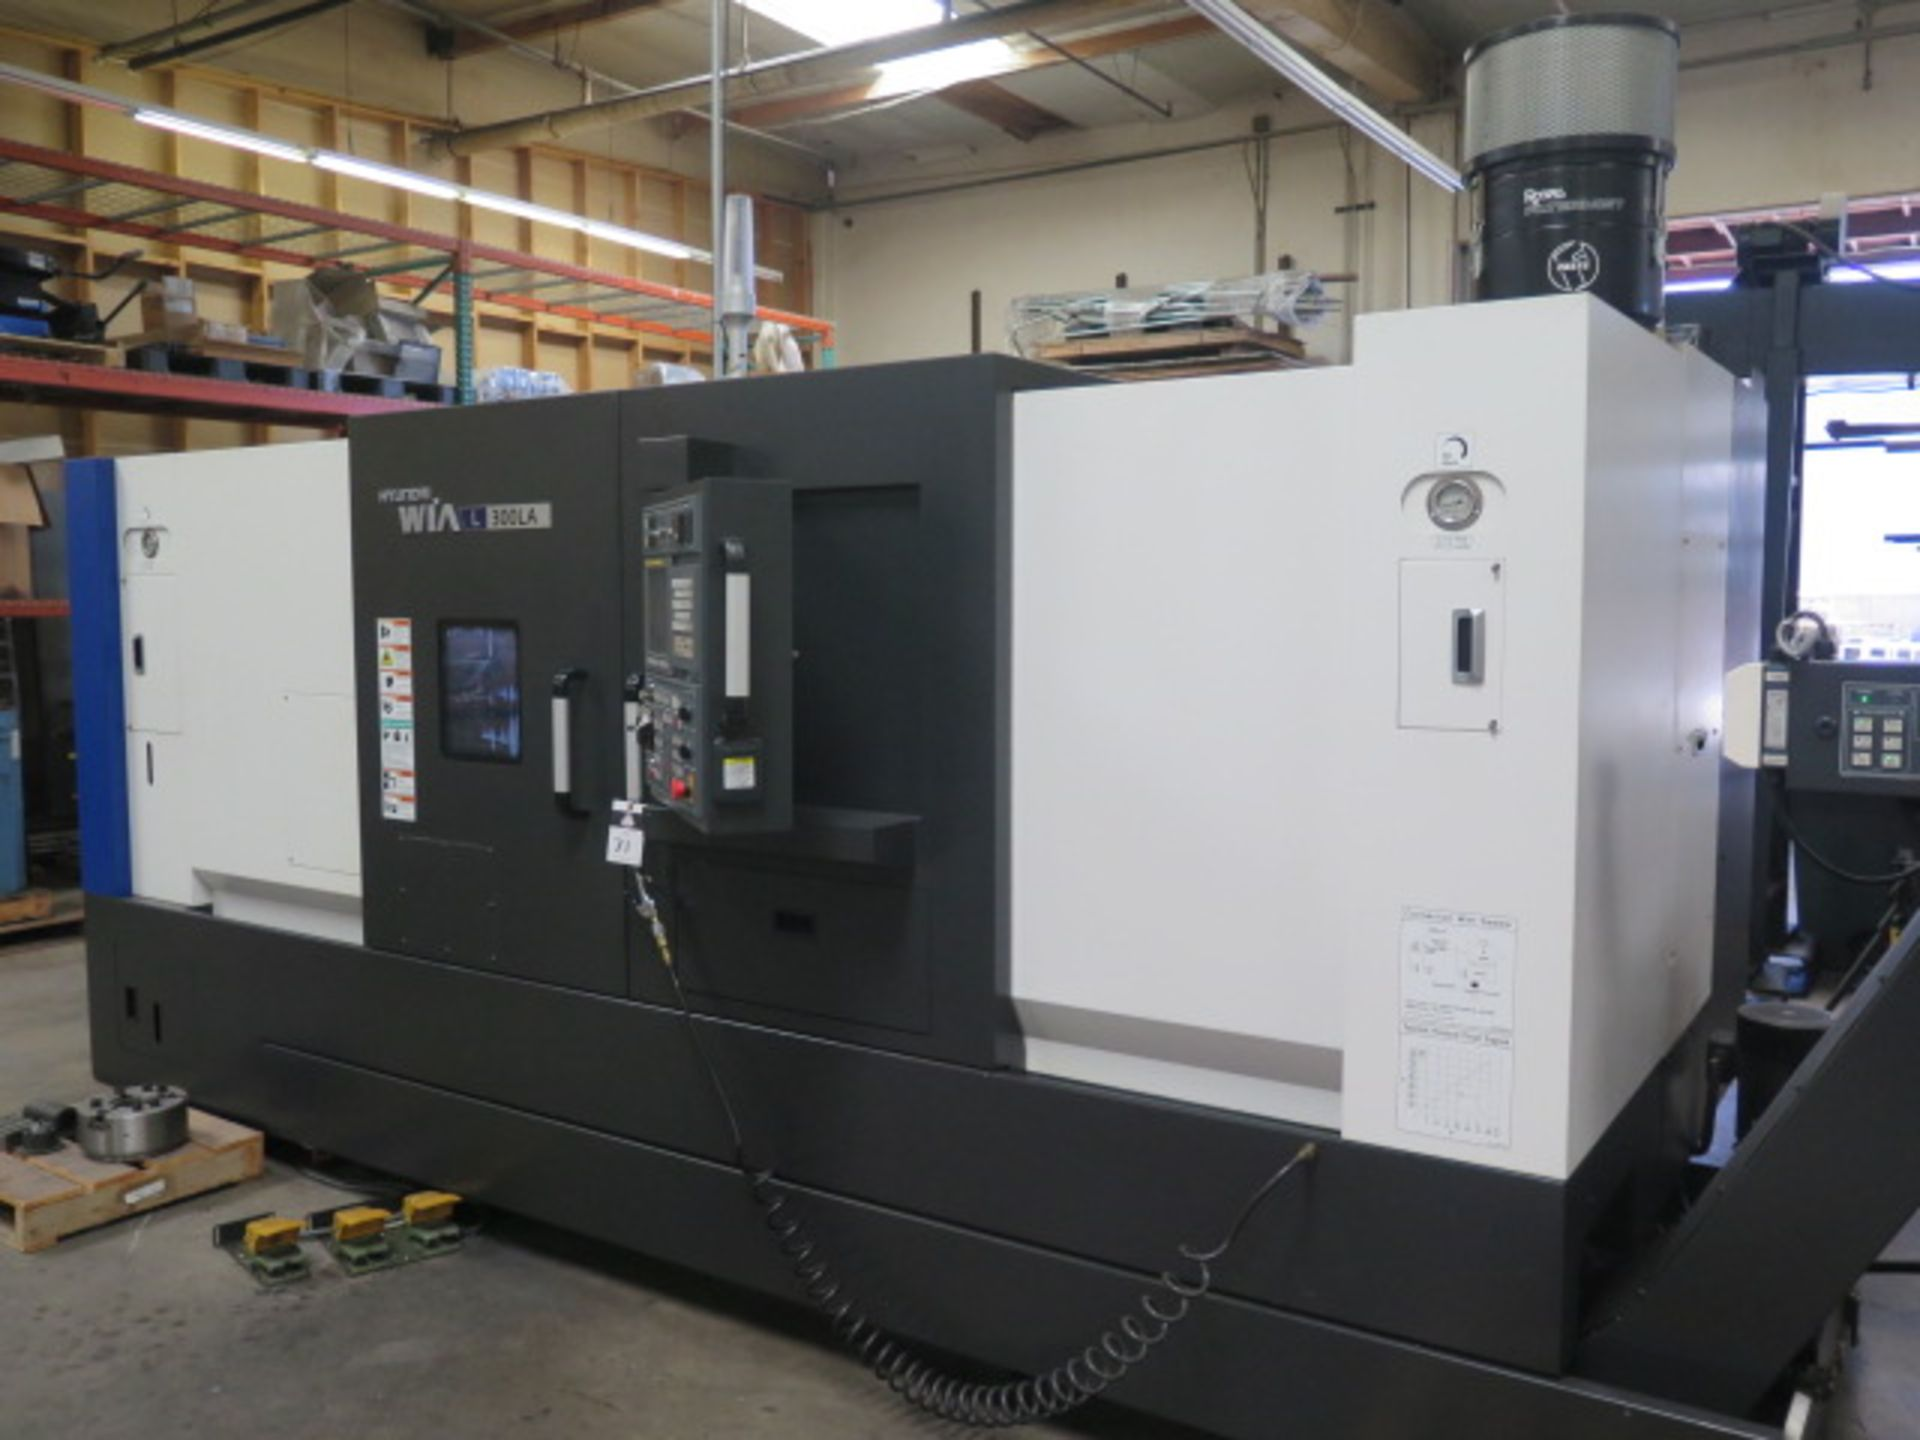 2017 Hyundai WIA L300LA CNC Turning Center s/n G3726-0108 w/ Fanuc i-Series Controls, SOLD AS IS - Image 2 of 18